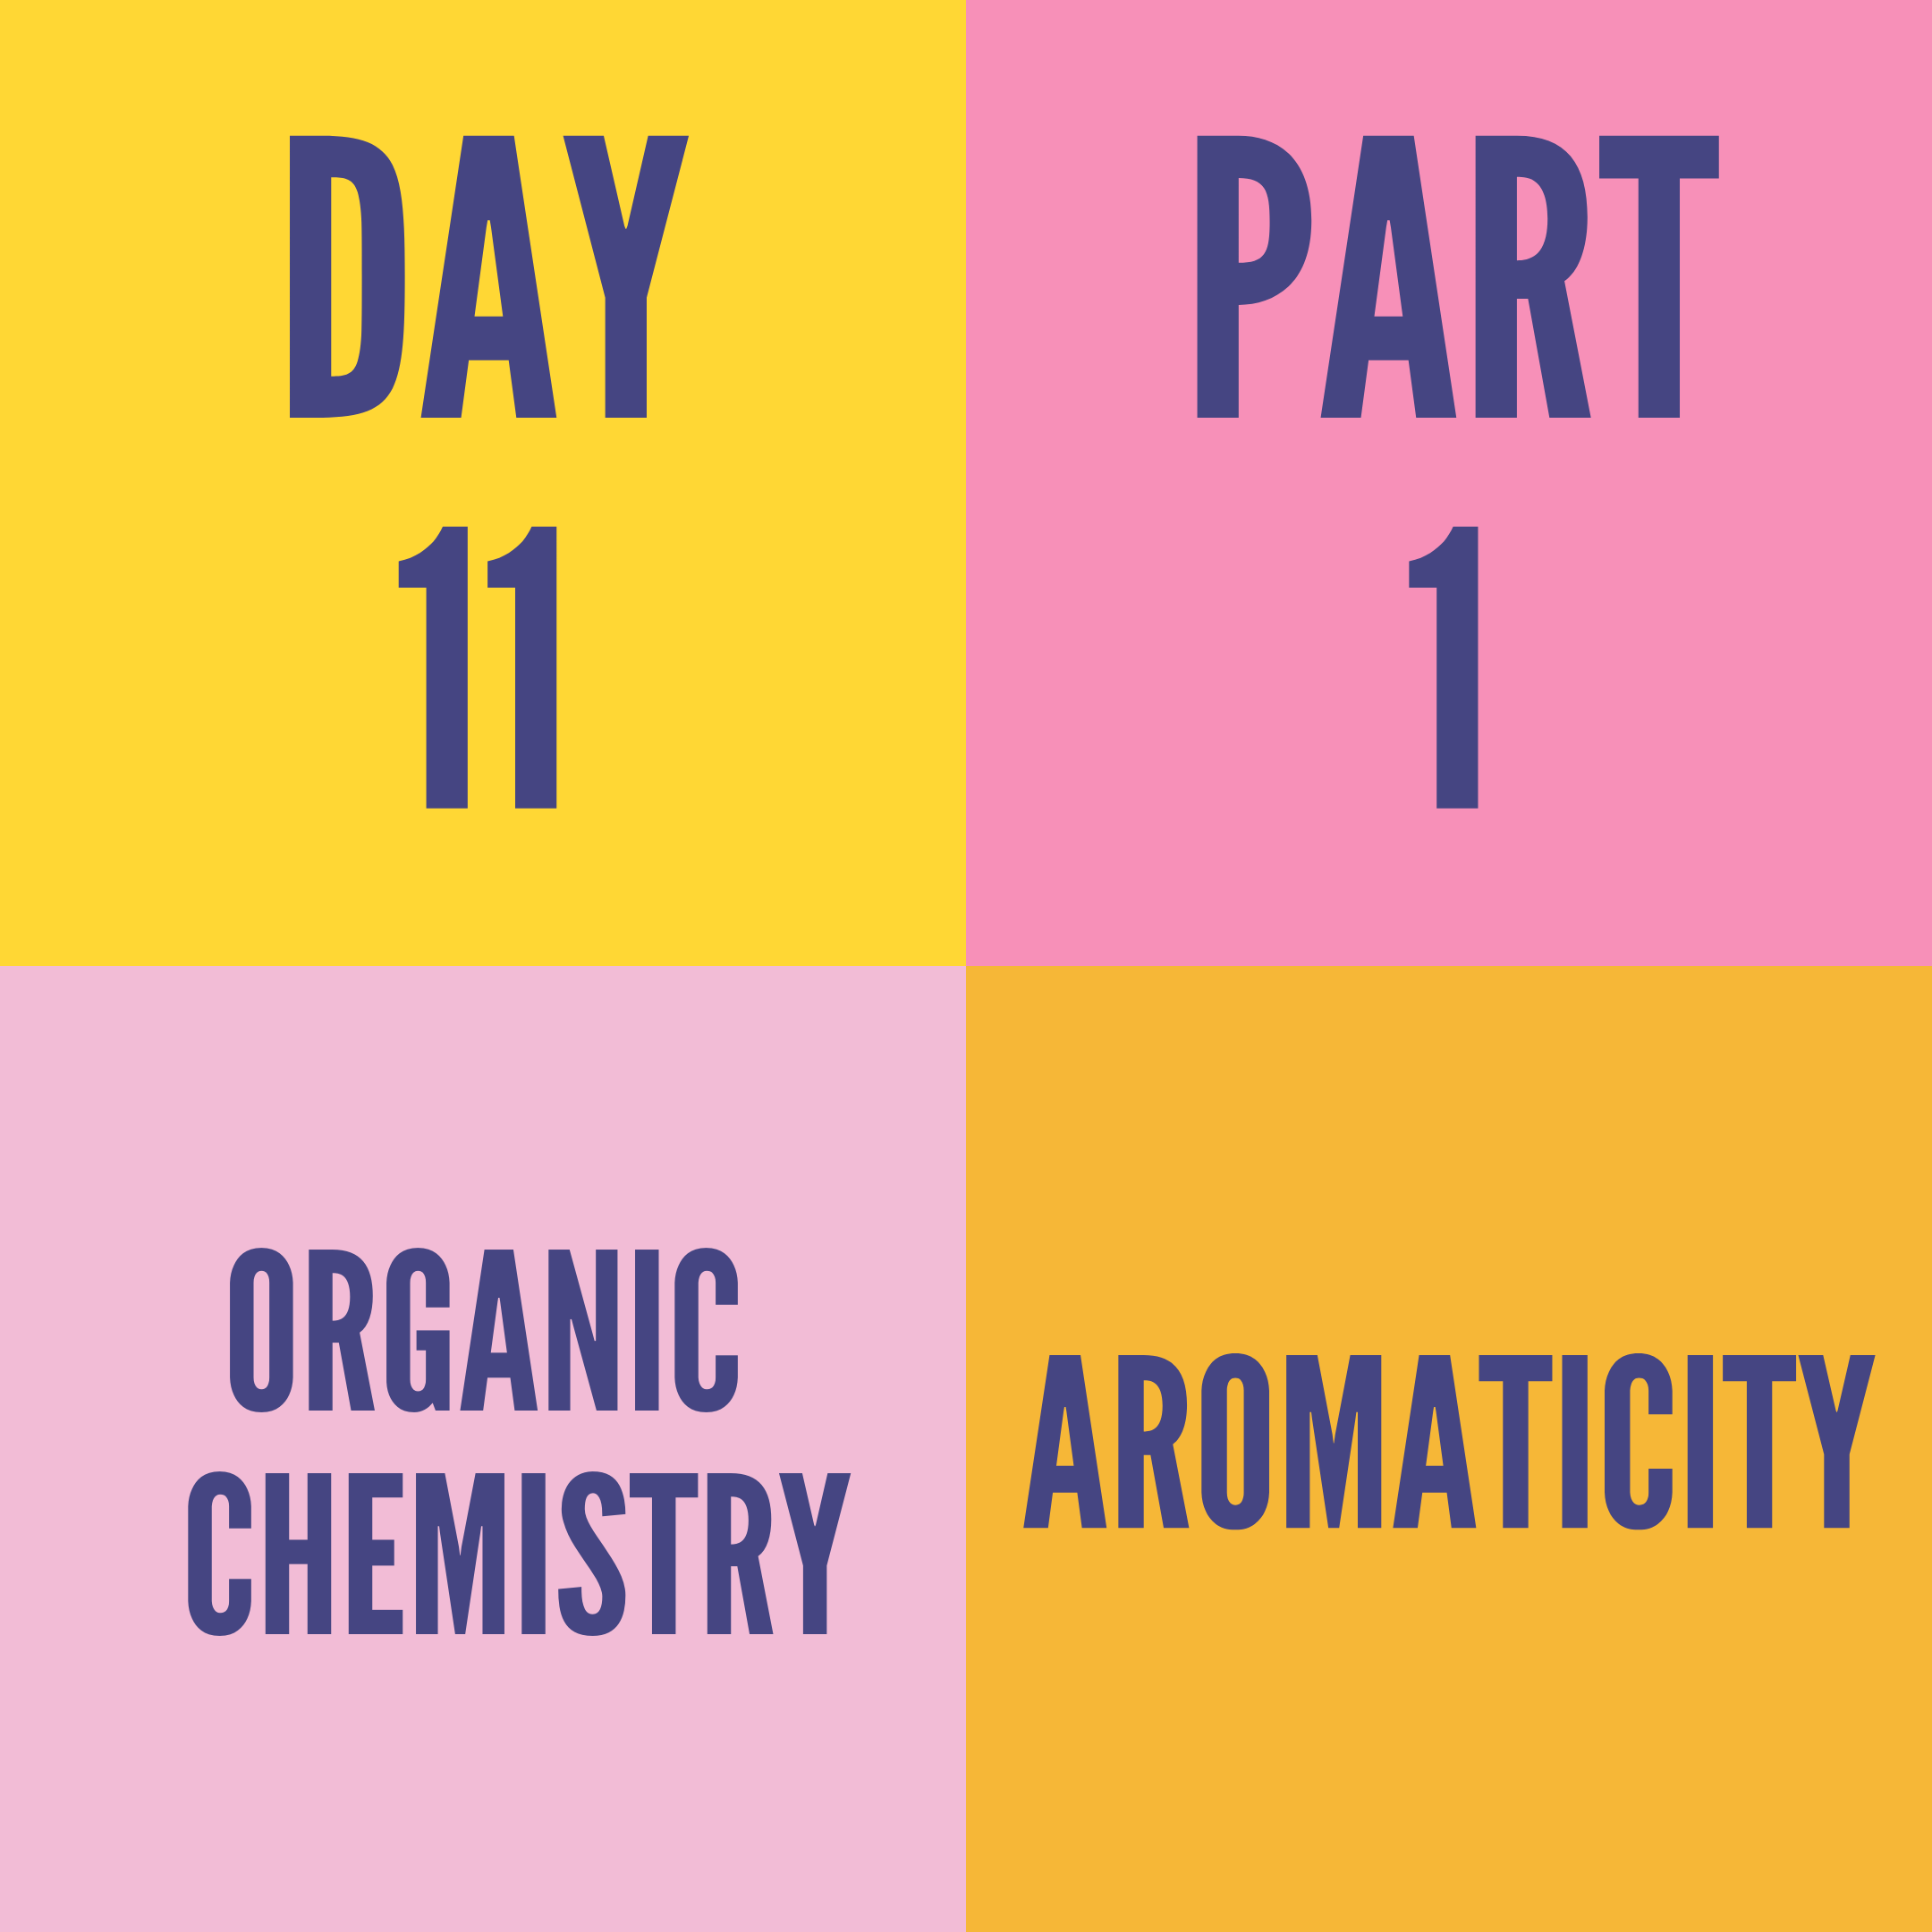 DAY-11 PART-1 AROMATICITY